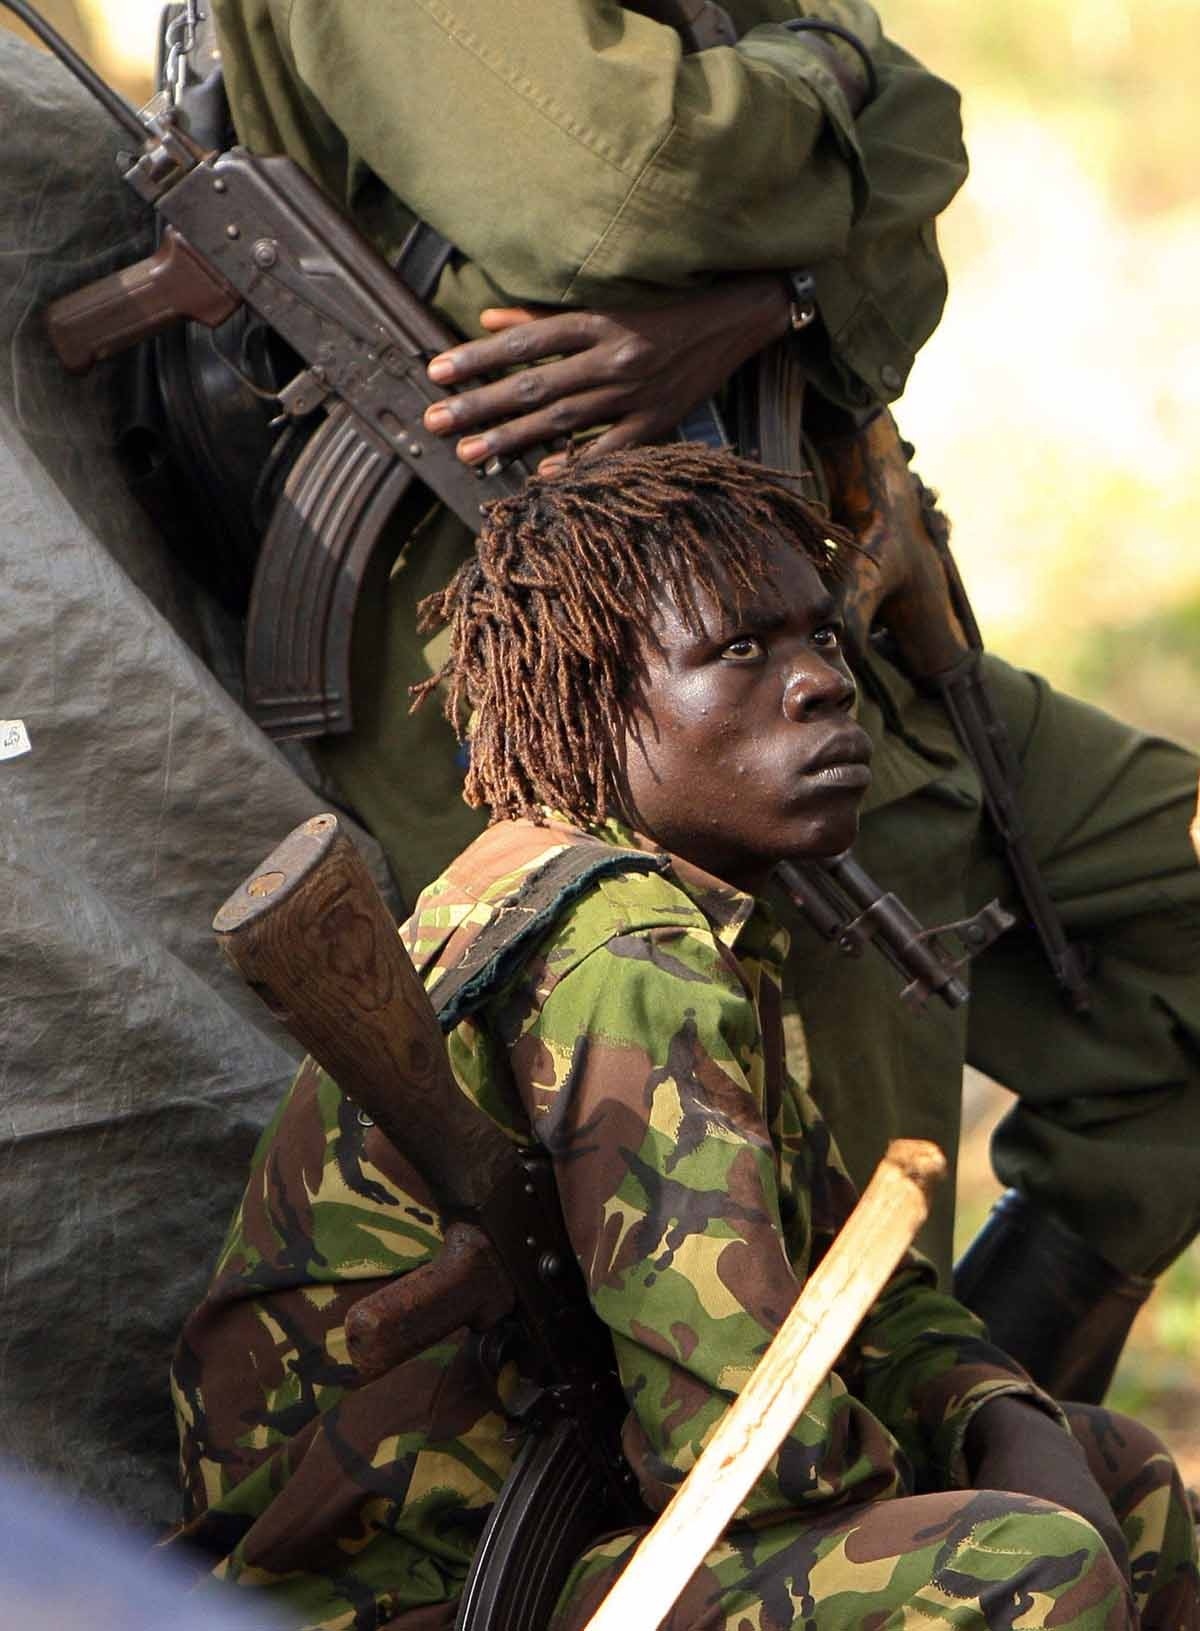 An armed fighter of the Lord's Resistance Army (LRA) looks at a fellow fighter 12 November 2006 during a meeting between the rebel group's leadership and United Nations Emergency Relief coordinator Jan Egeland in Ri-Kwamba, southern Sudan.